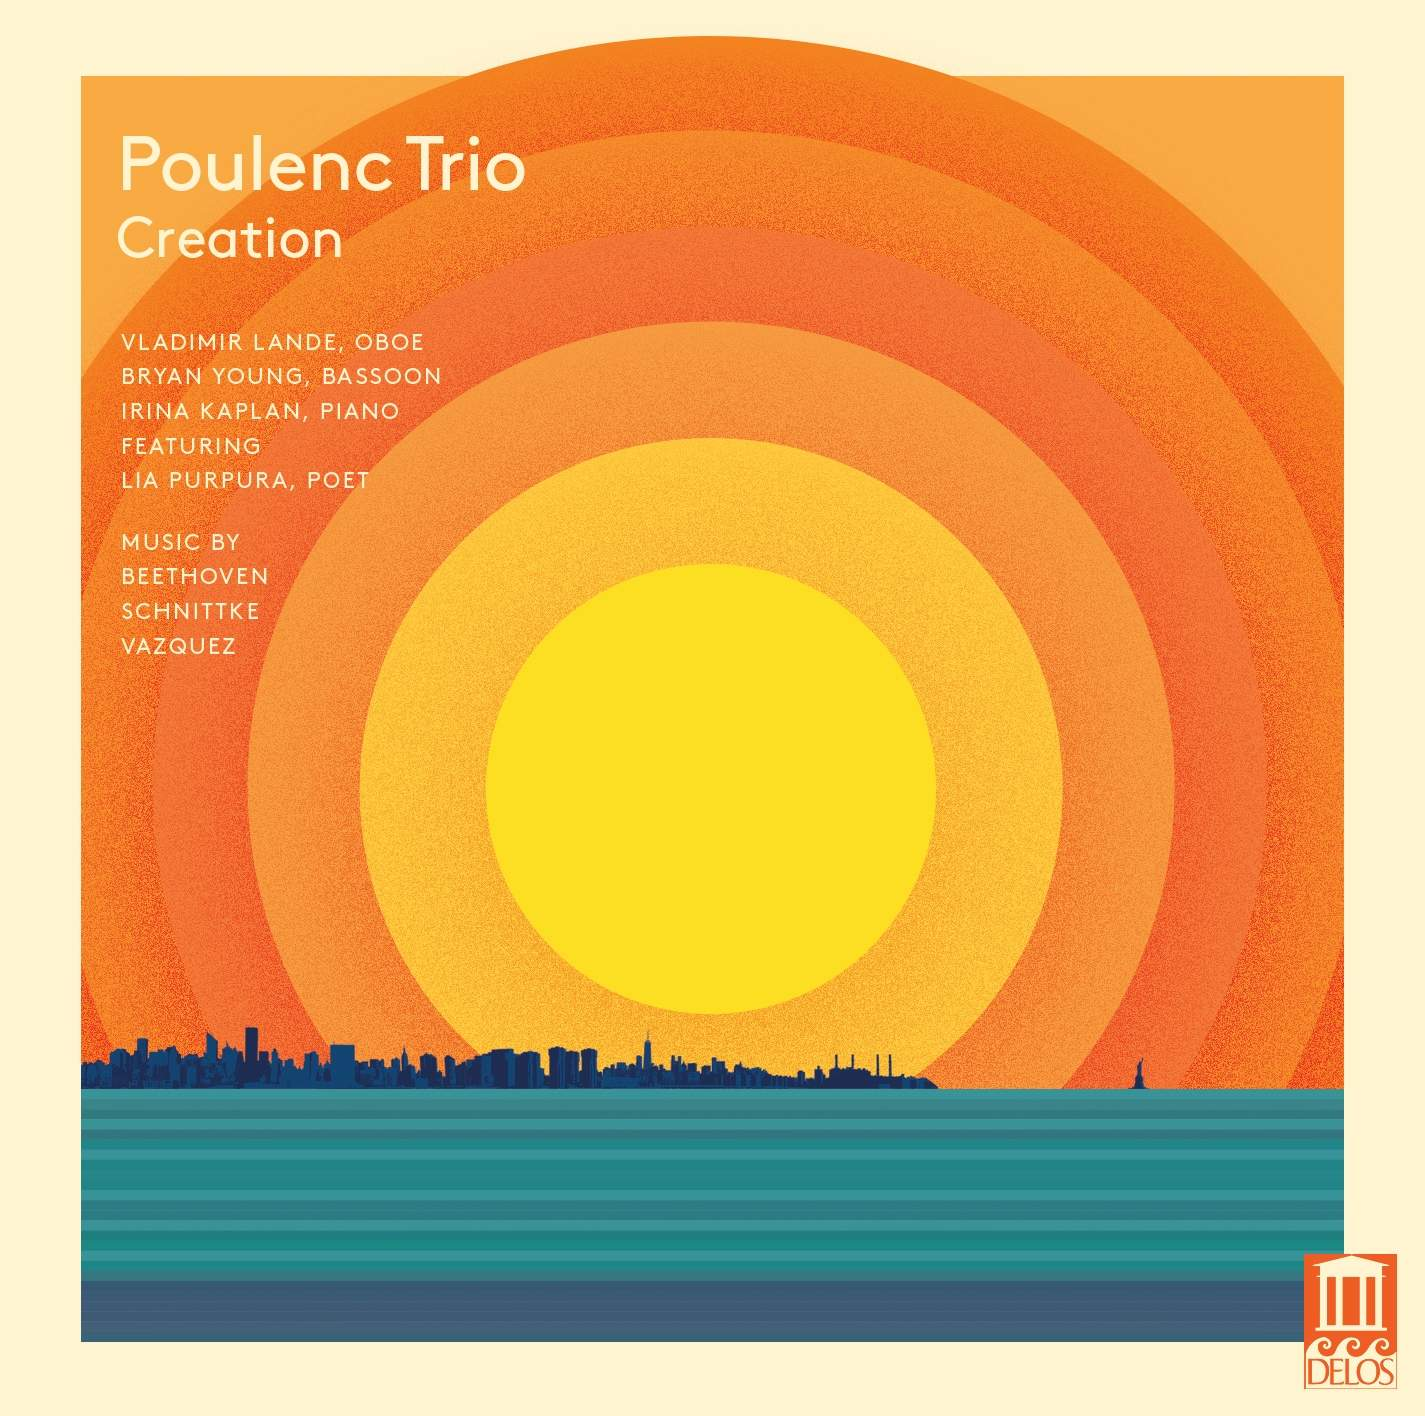 Creation: The Poulenc Trio